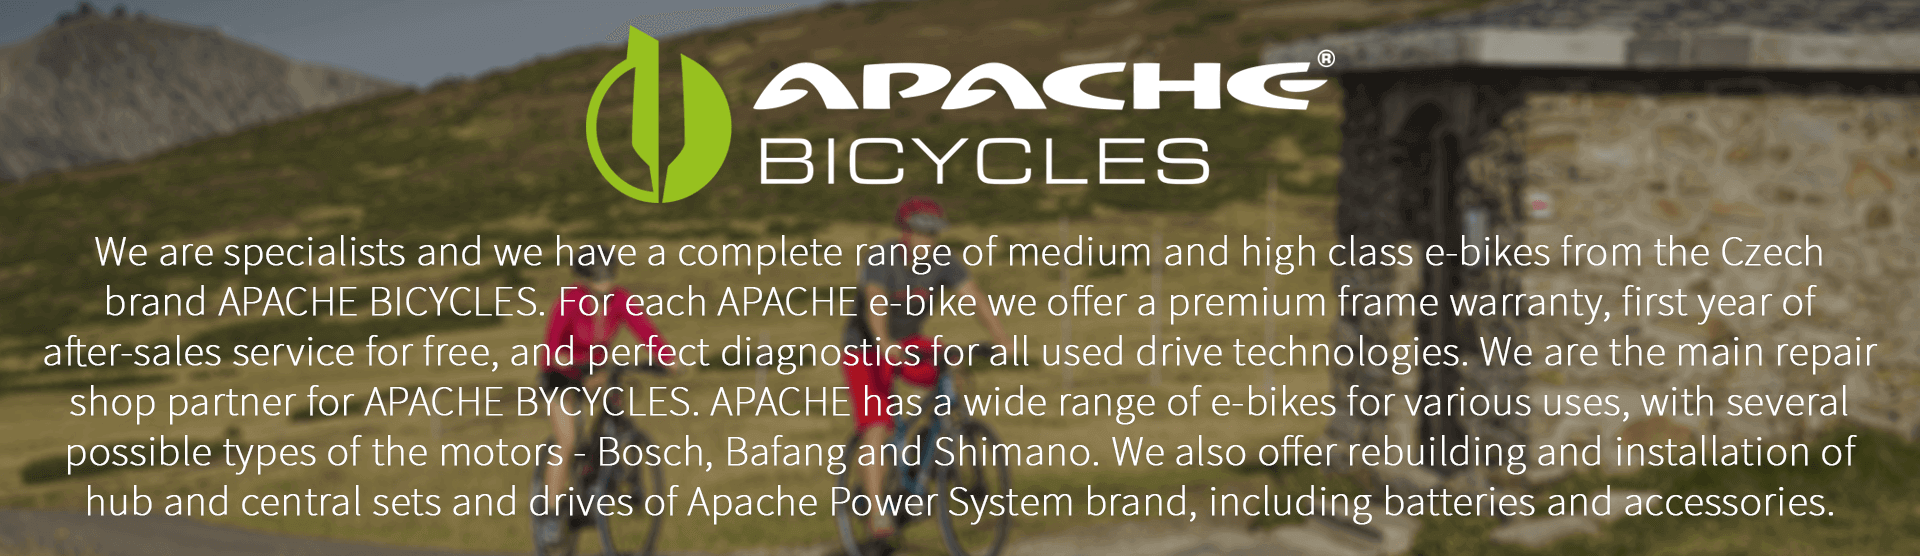 We are specialists and we have a complete range of medium and high class e-bikes from the Czech brand APACHE BICYCLES. For each APACHE e-bike we offer a premium frame warranty, first year of after-sales service for free, and perfect diagnostics for all used drive technologies. We are the main repair shop partner for APACHE BYCYCLES. APACHE has a wide range of e-bikes for various uses, with several possible types of the motors - Bosch, Bafang and Shimano. We also offer rebuilding and installation of hub and central sets and drives of Apache Power System brand, including batteries and accessories.